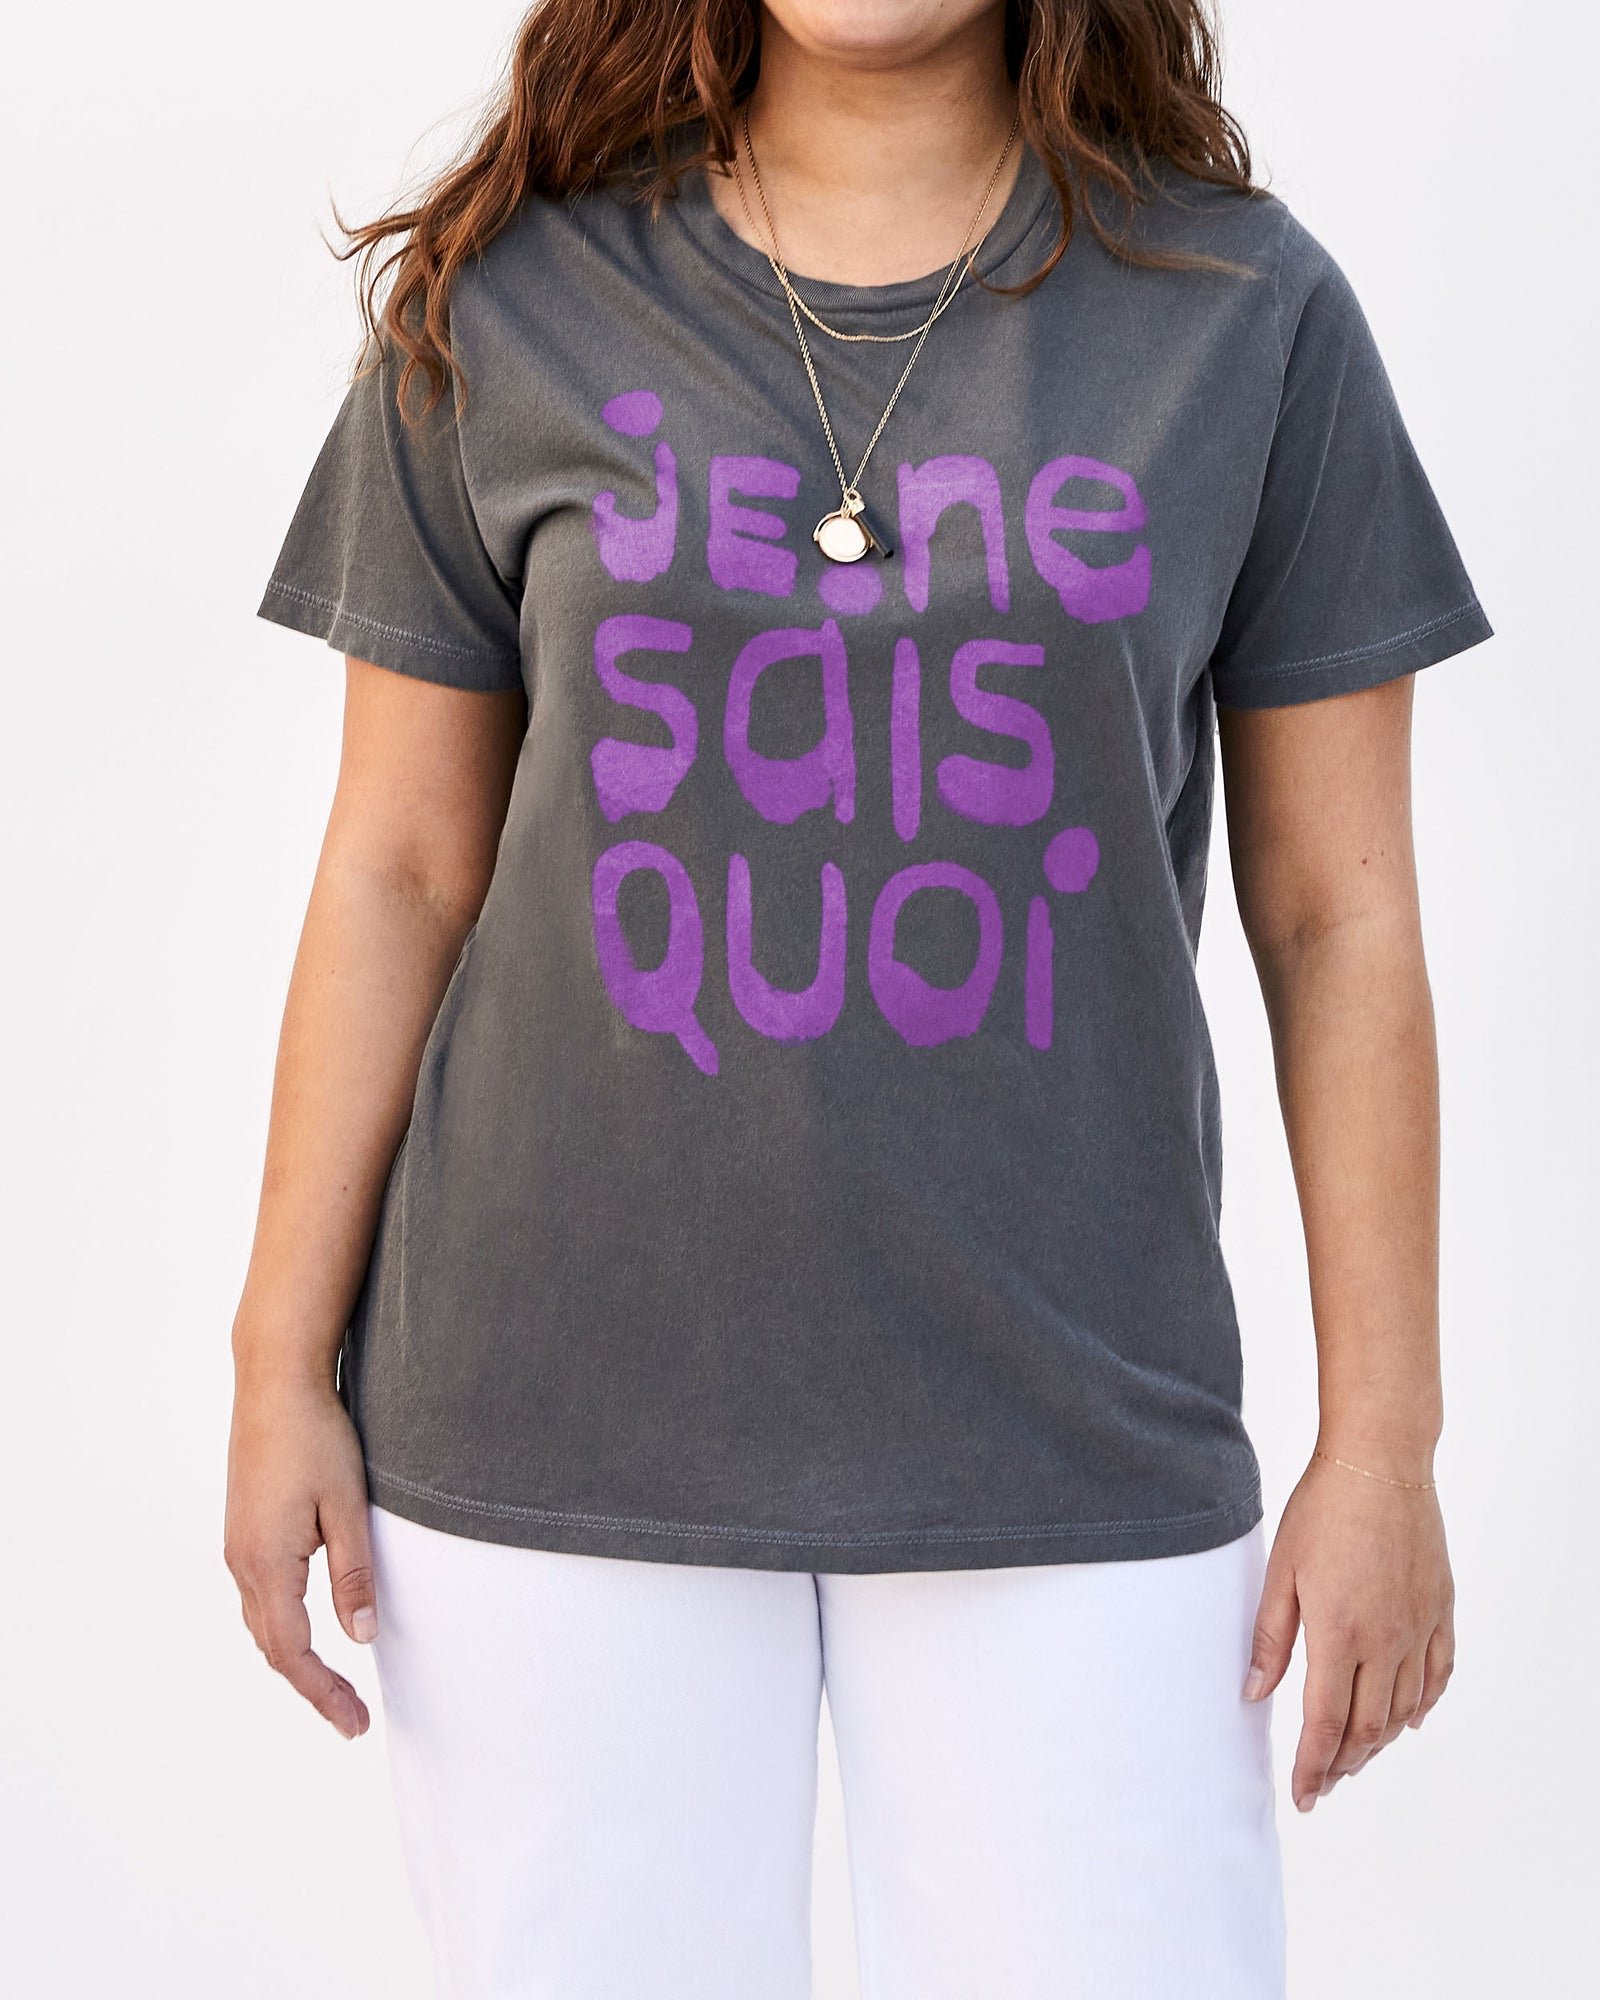 Faded Black with Iris Je Ne Sais Quoi Original Fit Tee on Abbi